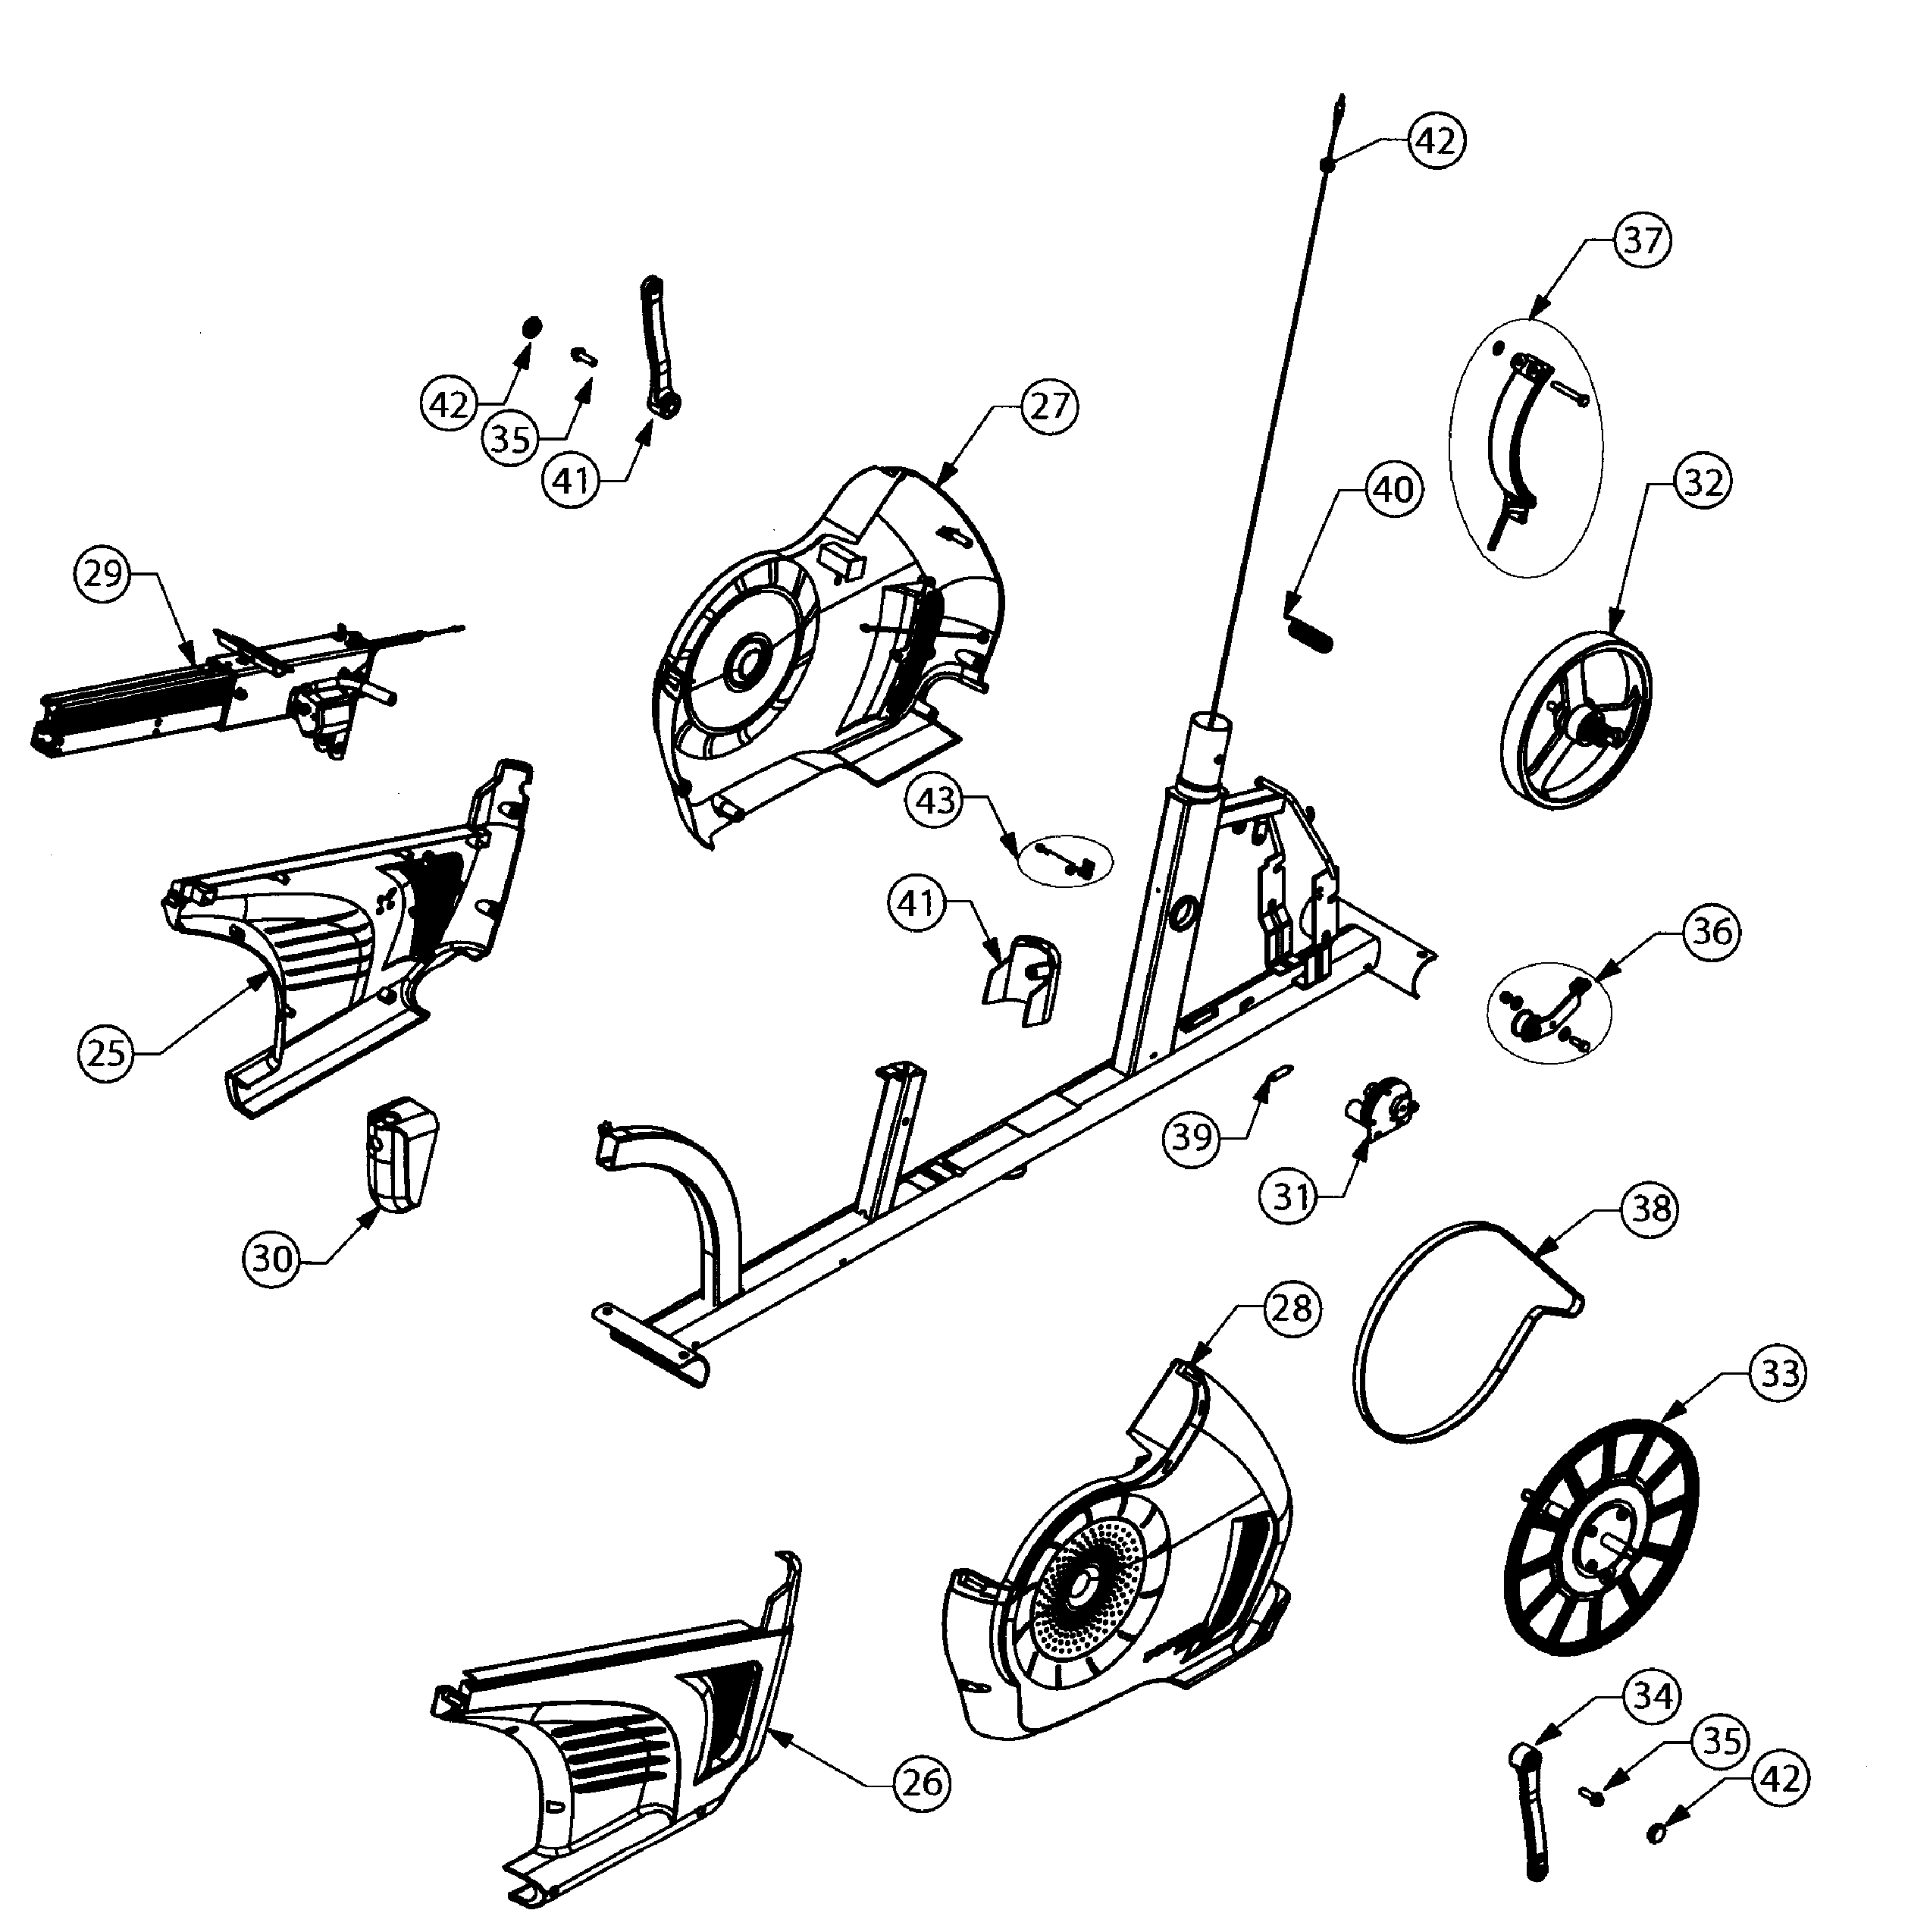 Schwinn 100338 wheel assy diagram